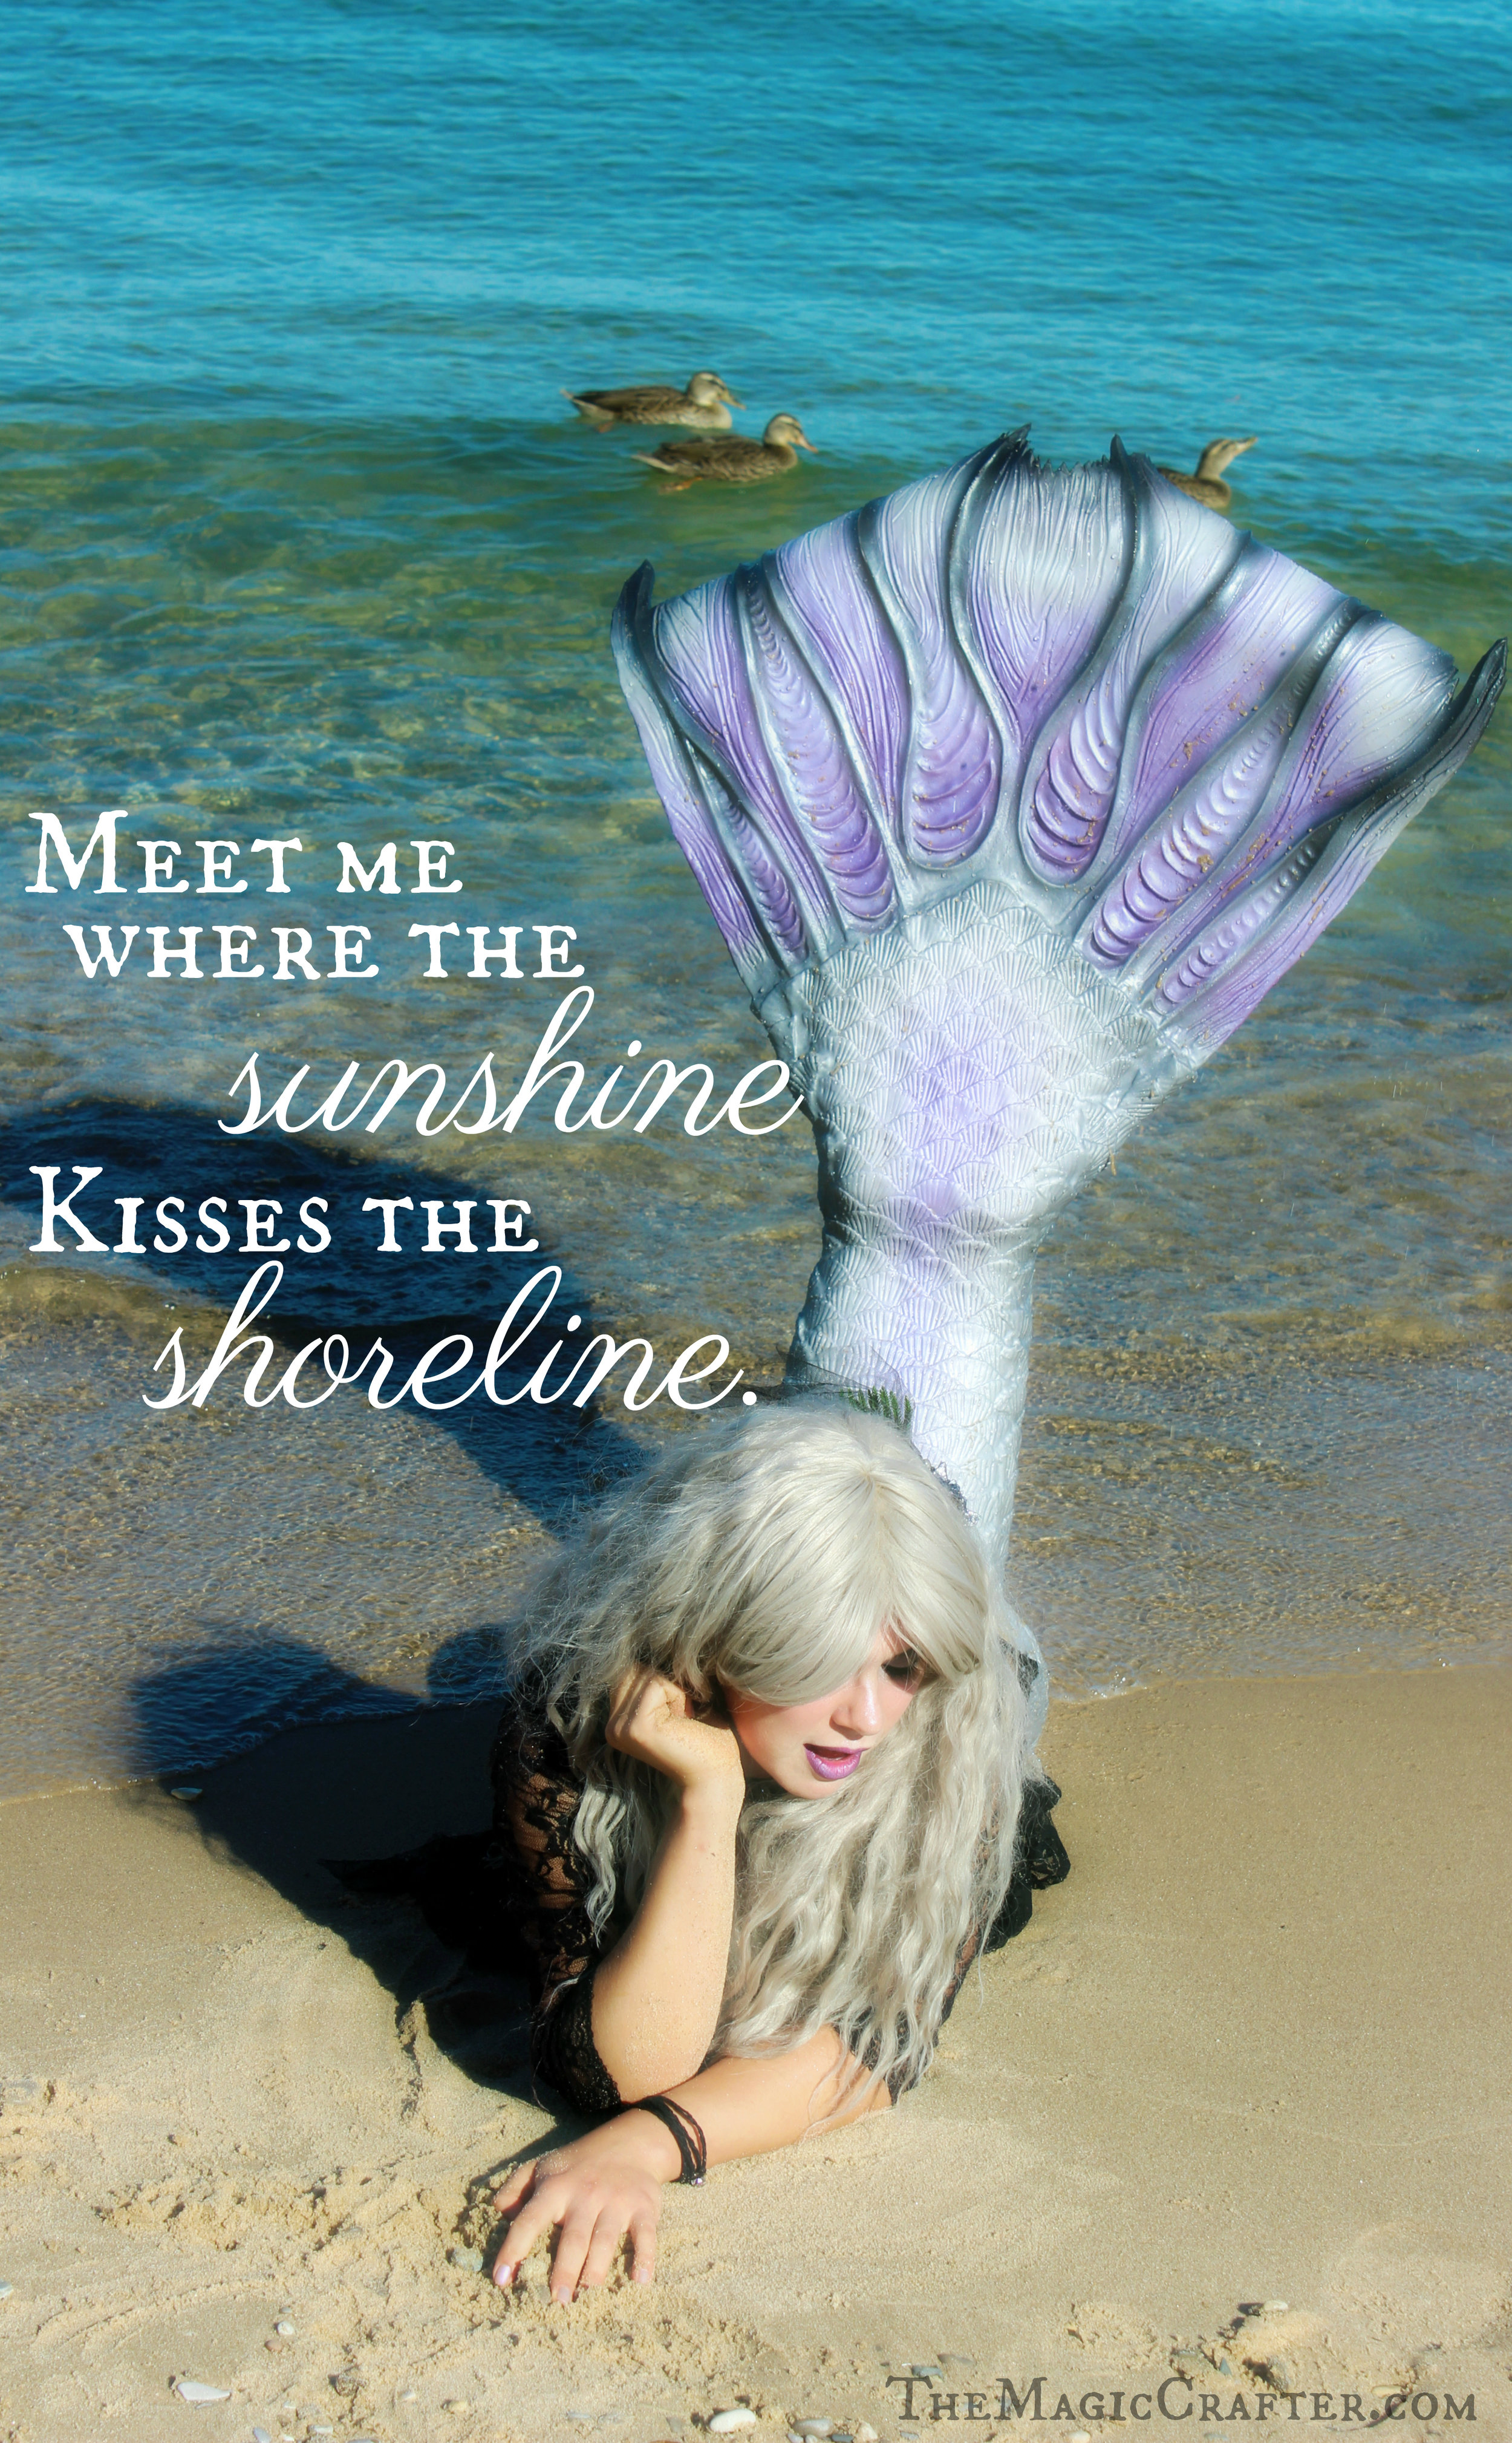 """Meet me where the Sunshine kisses the Shoreline""  -Quote by Mermaid Phantom ♥ Click here to read her Magical Mermaid Blog & to see underwater mermaiding videos! ♥ #mermaids #quotes"